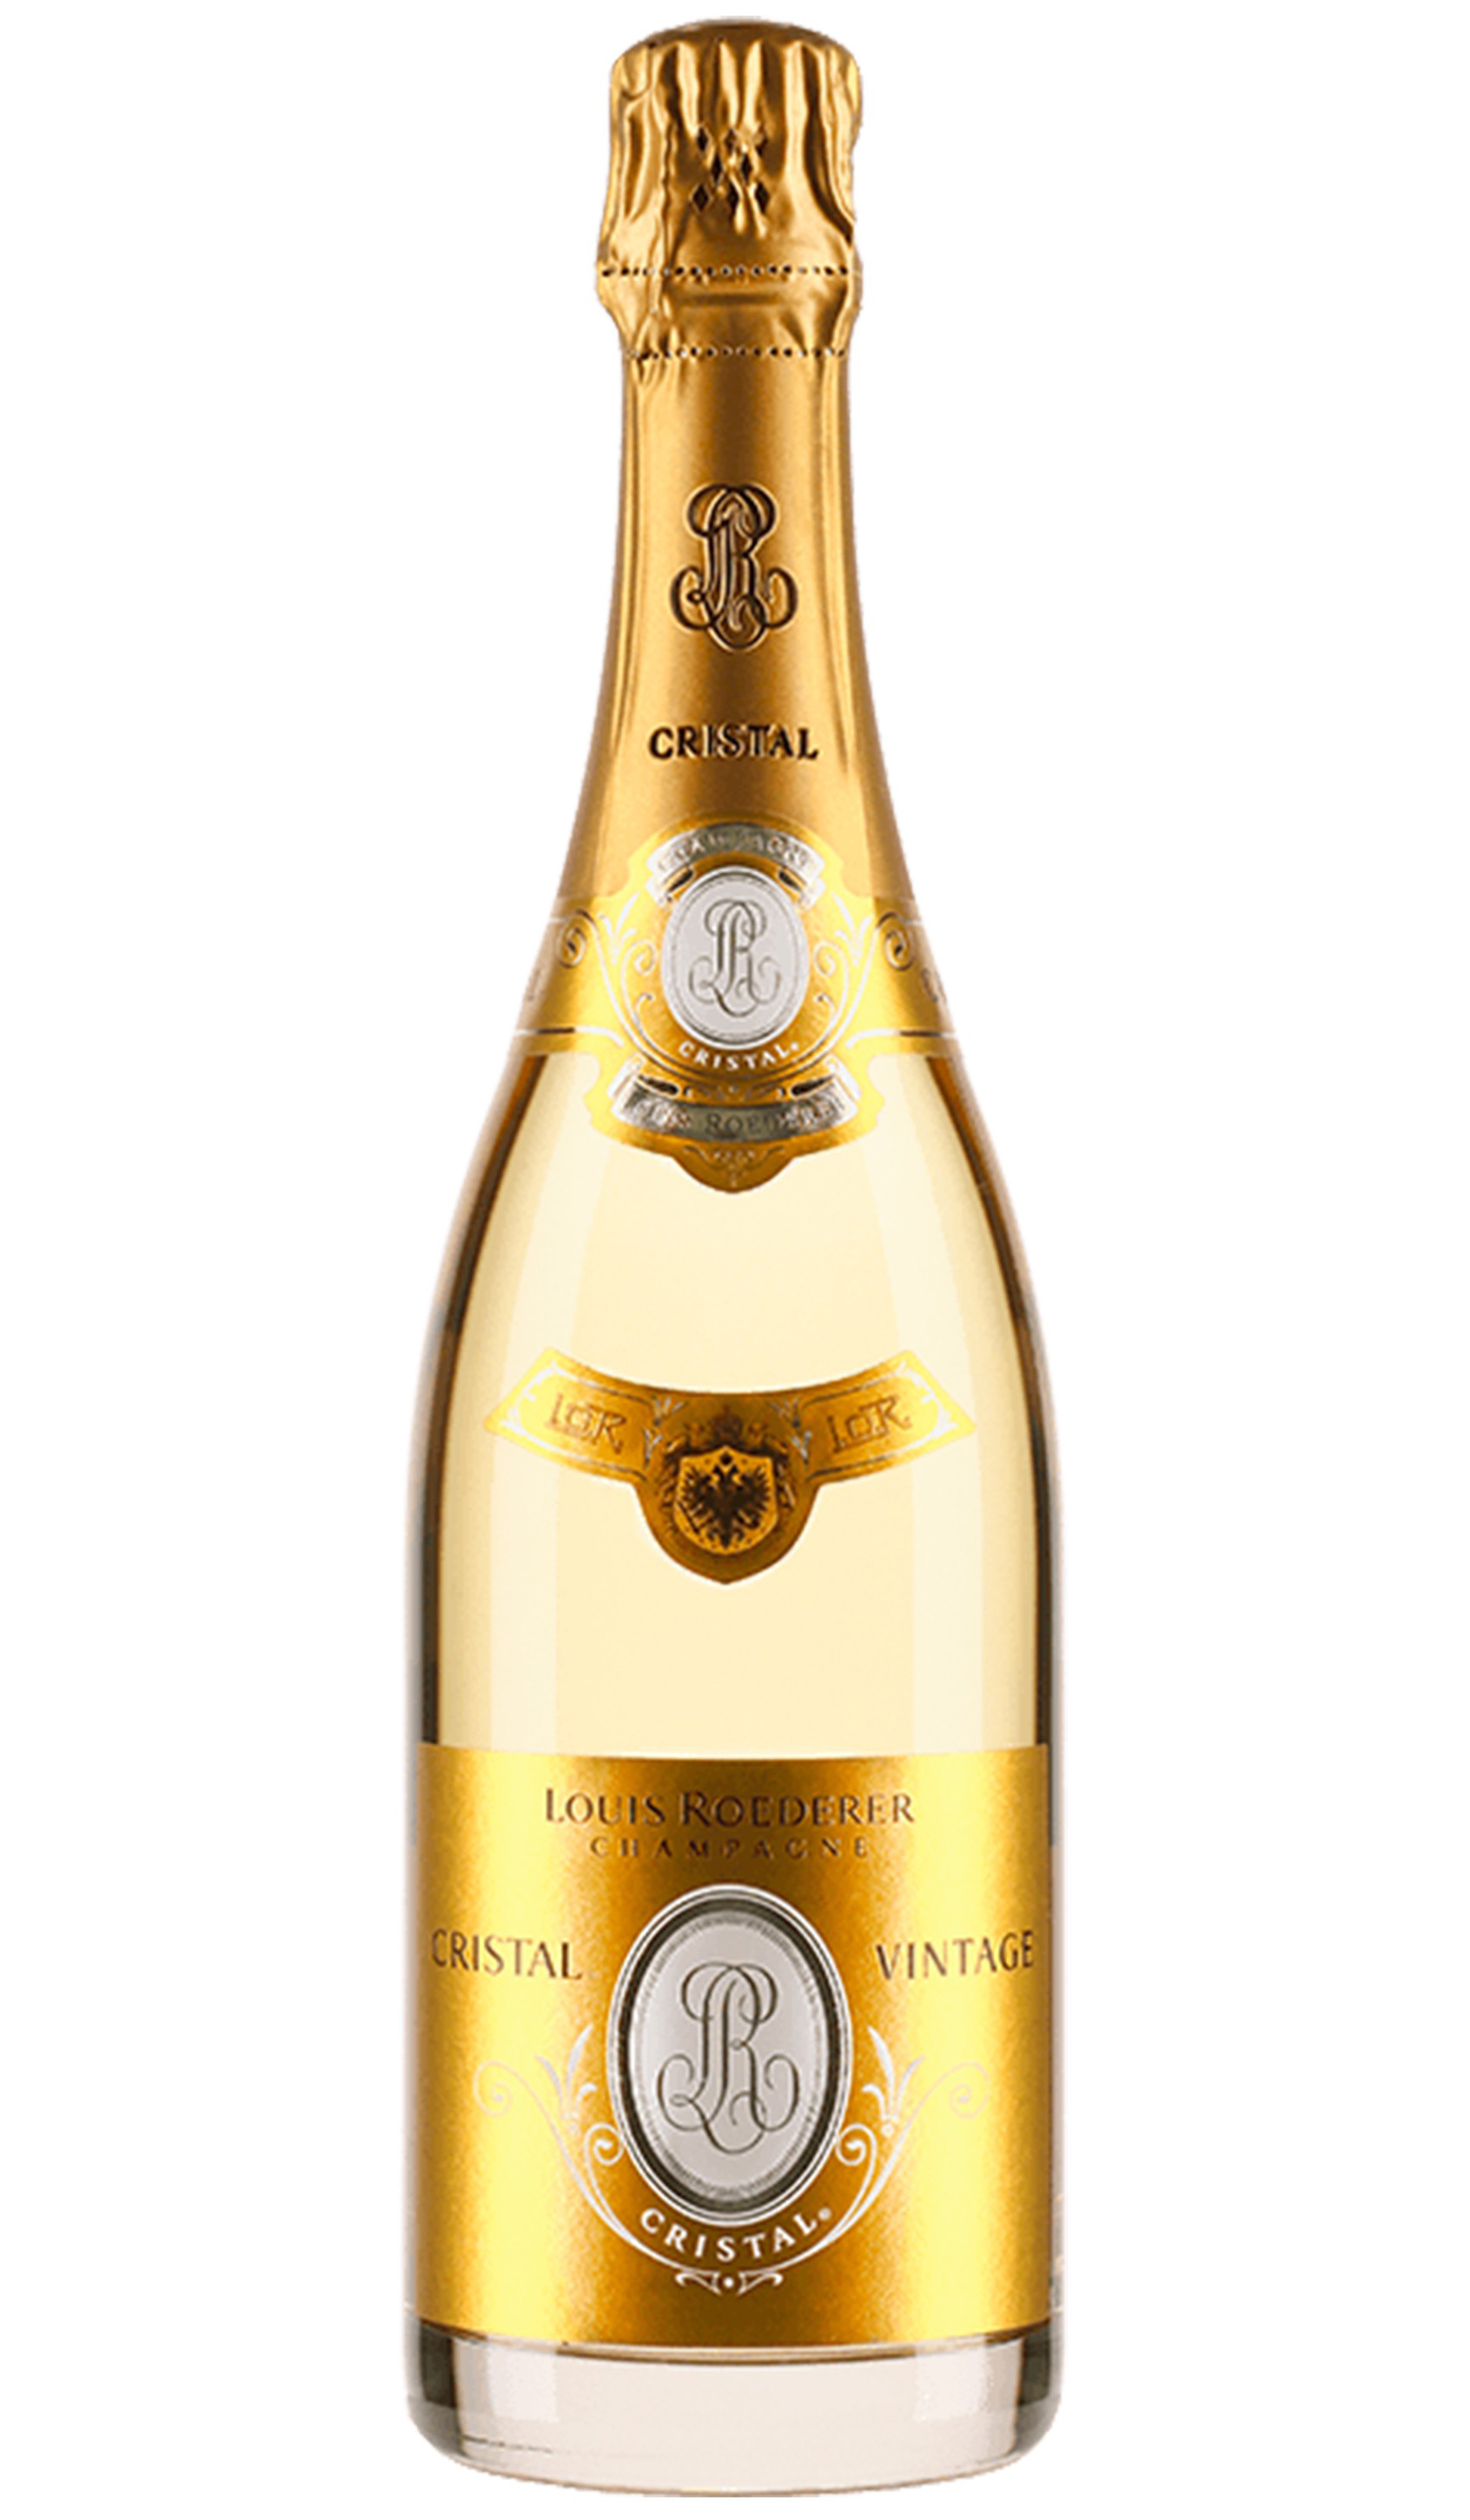 Champagne Cristal, Louis Roederer 2009